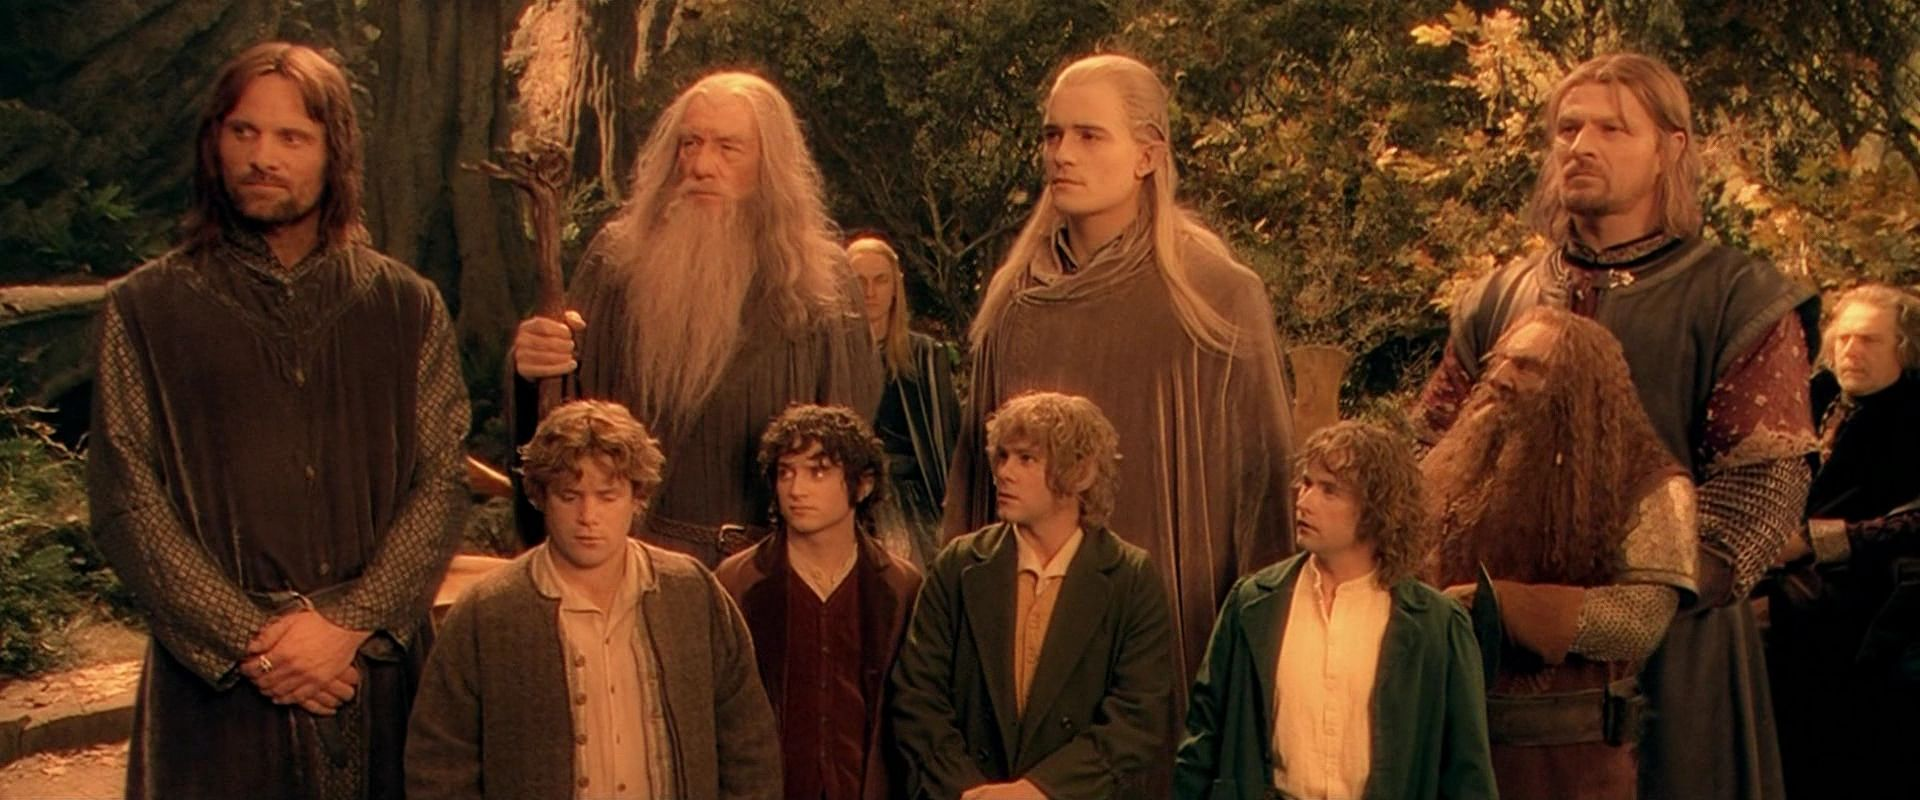 To Rule Them All The Lord Of The Rings The Fellowship Of The Ring 2001 Tripping Through Gateways